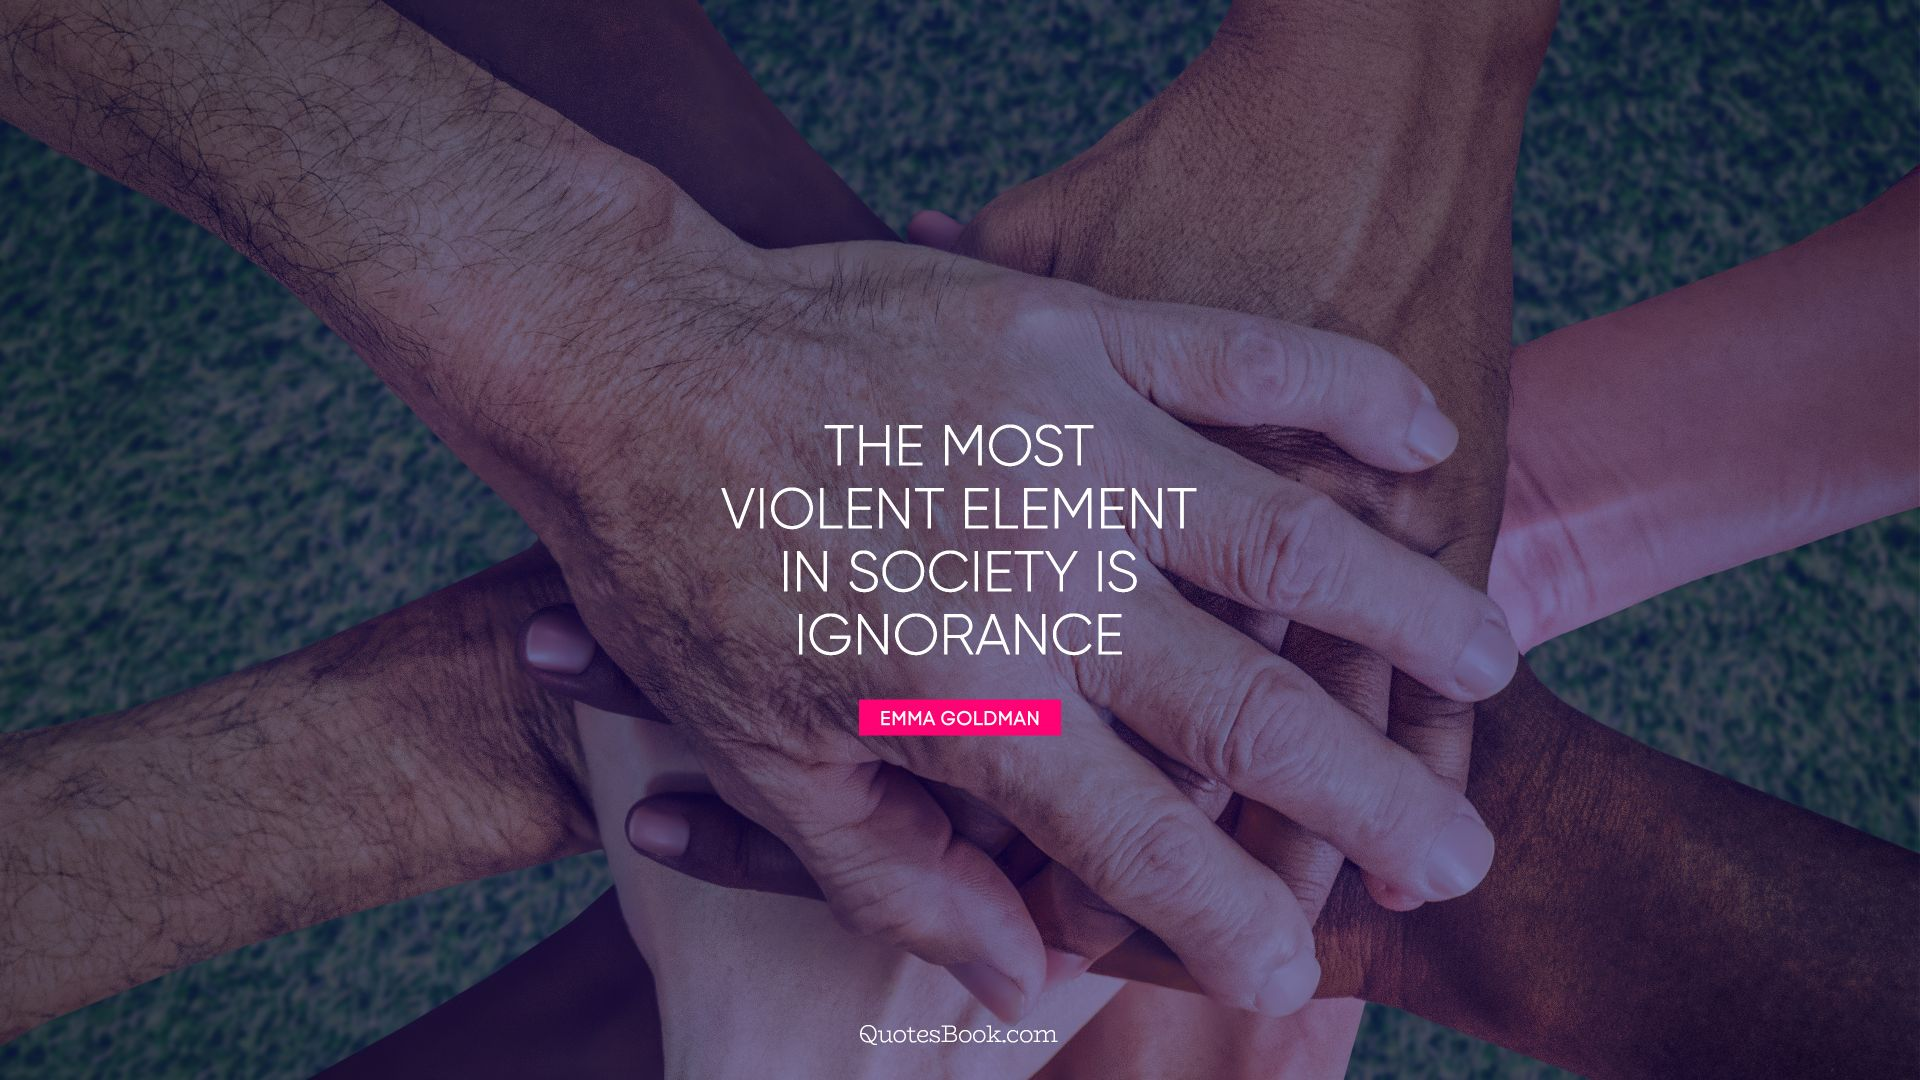 The most violent element in society is ignorance. - Quote by Emma Goldman